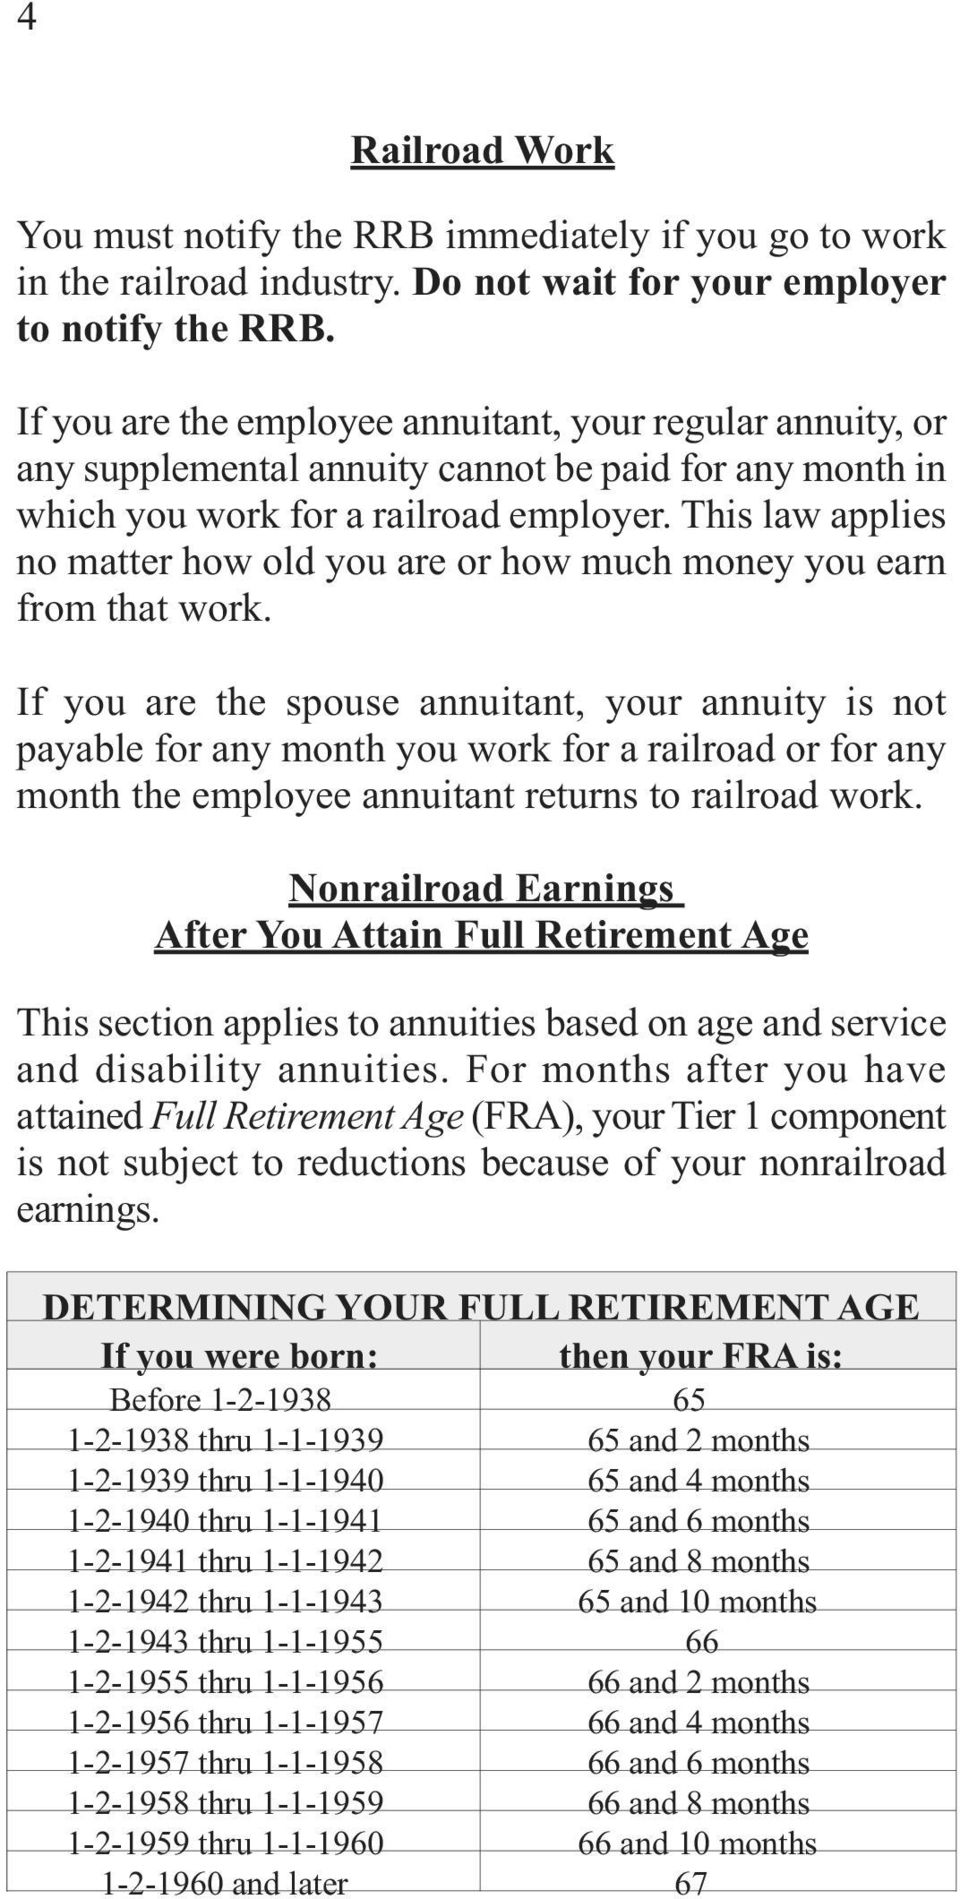 This law applies no matter how old you are or how much money you earn from that work.